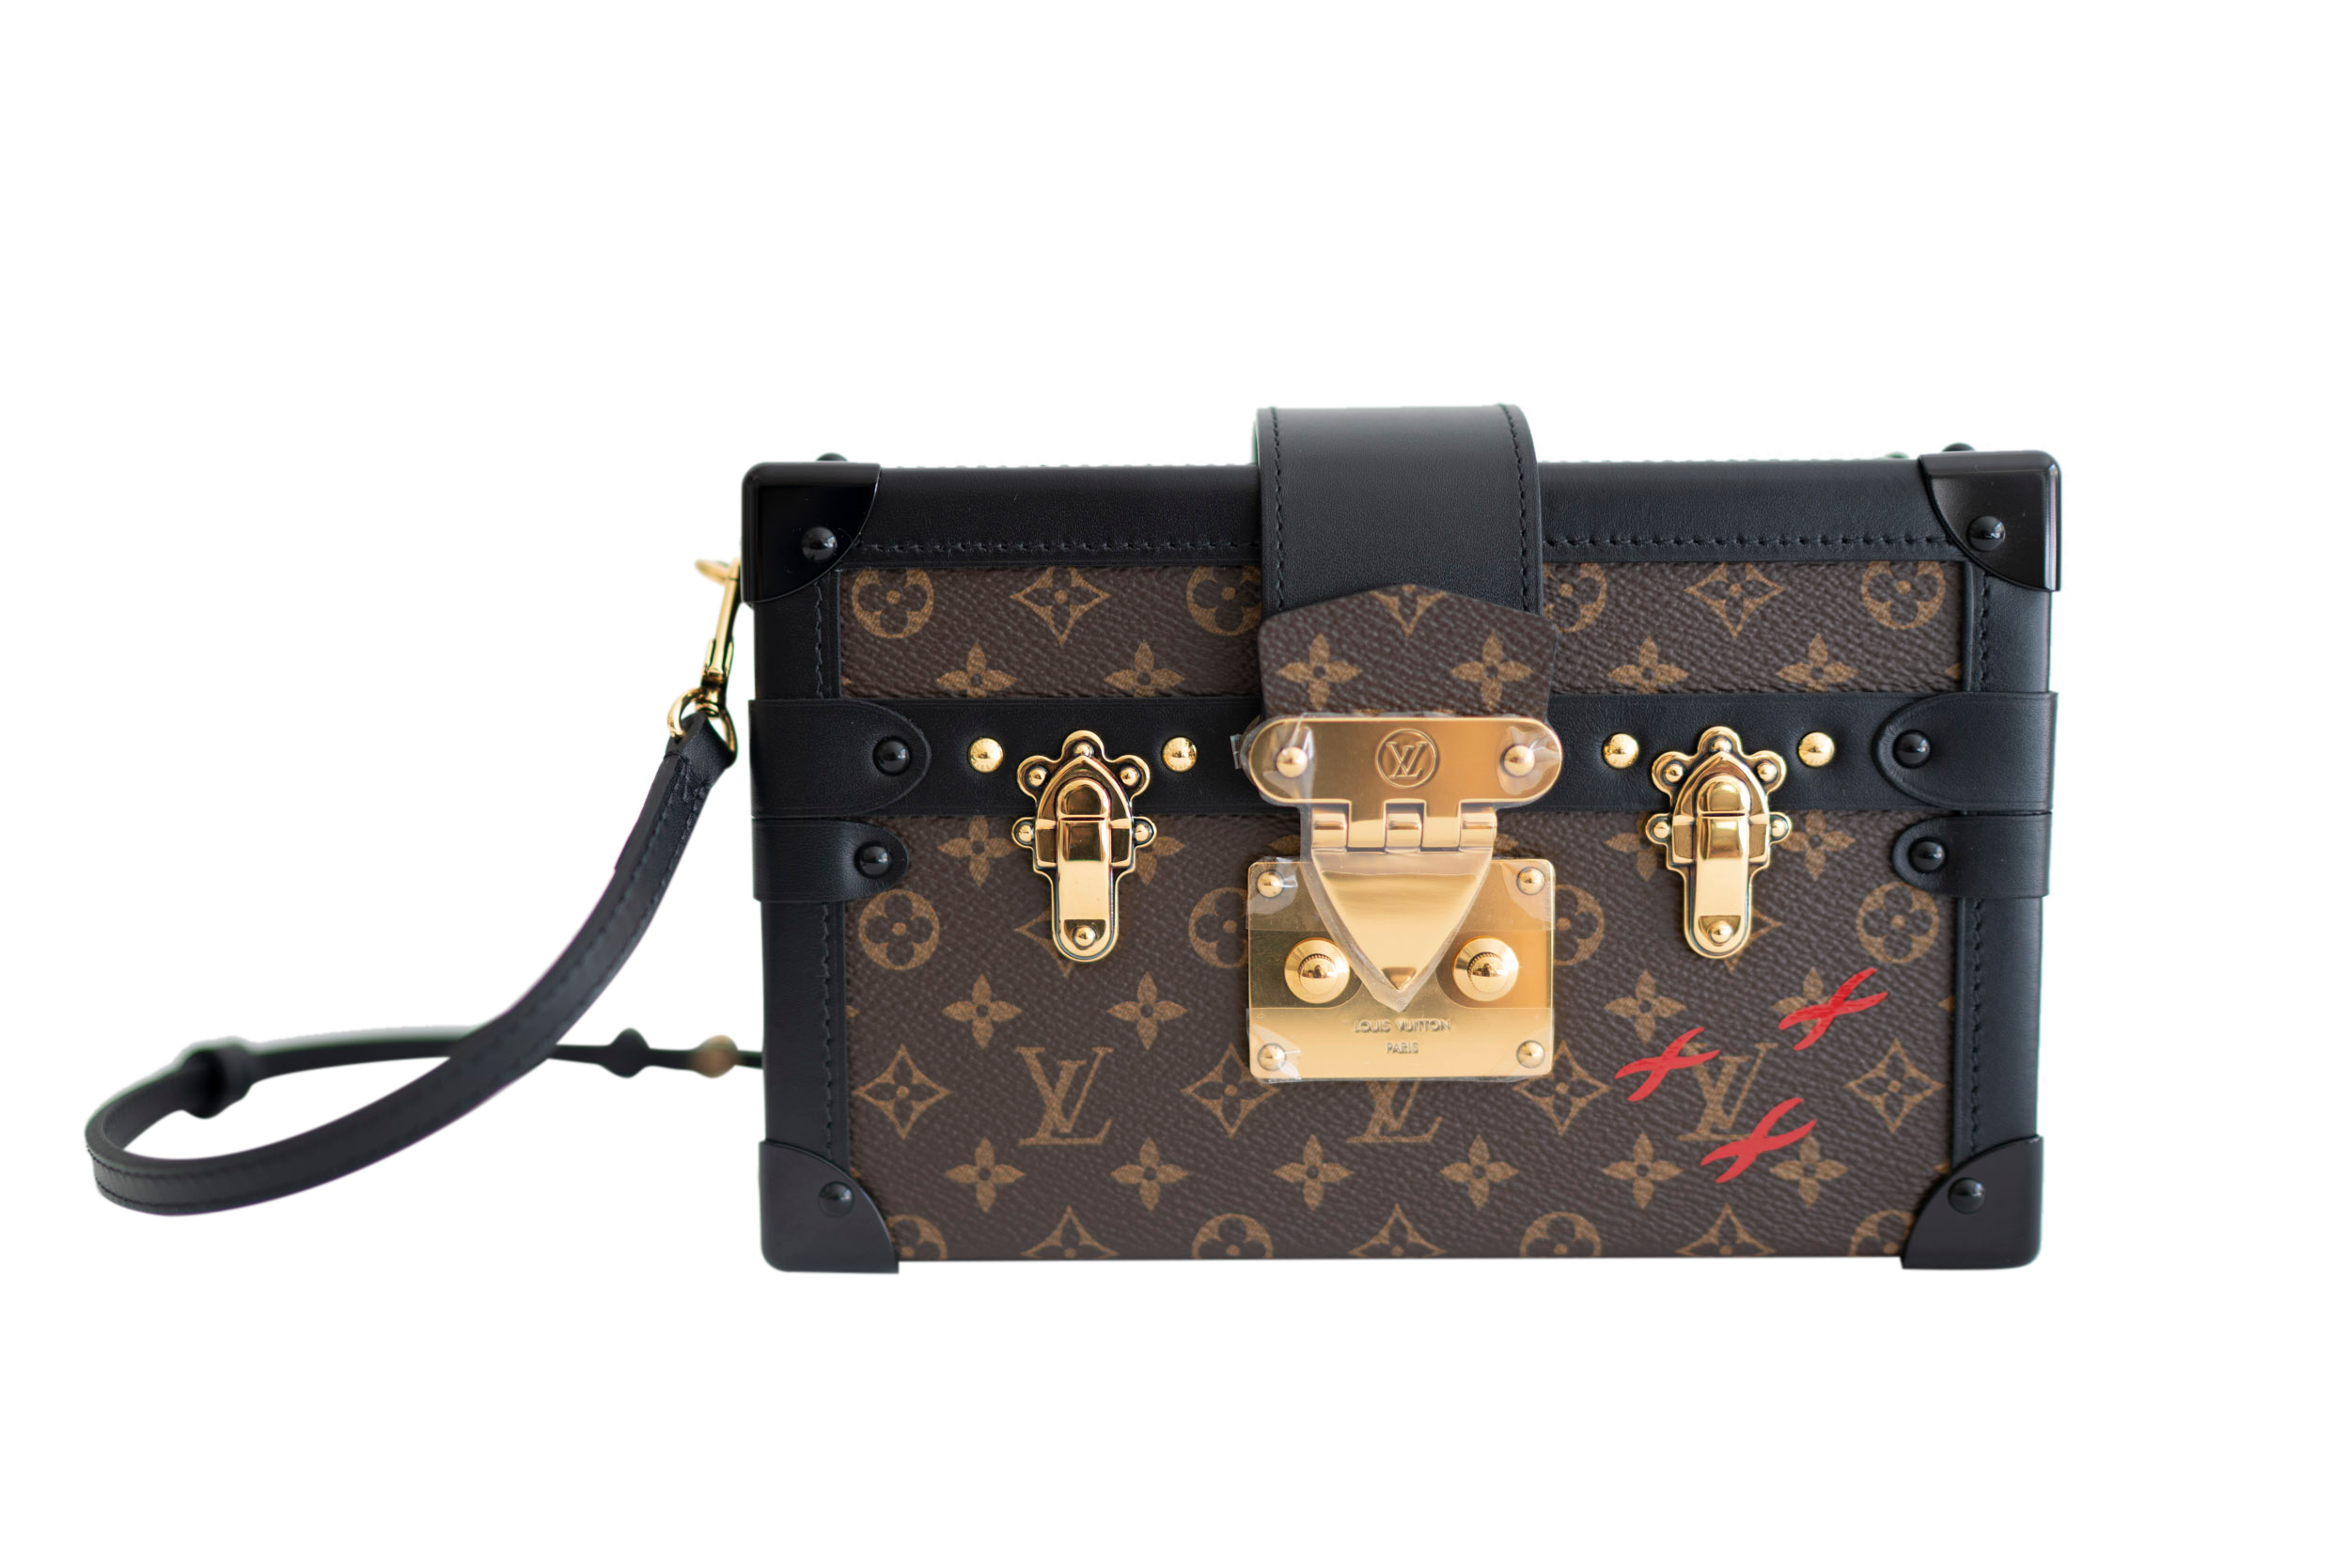 Louis vuitton bag worth investment download free ebooks on forex trading